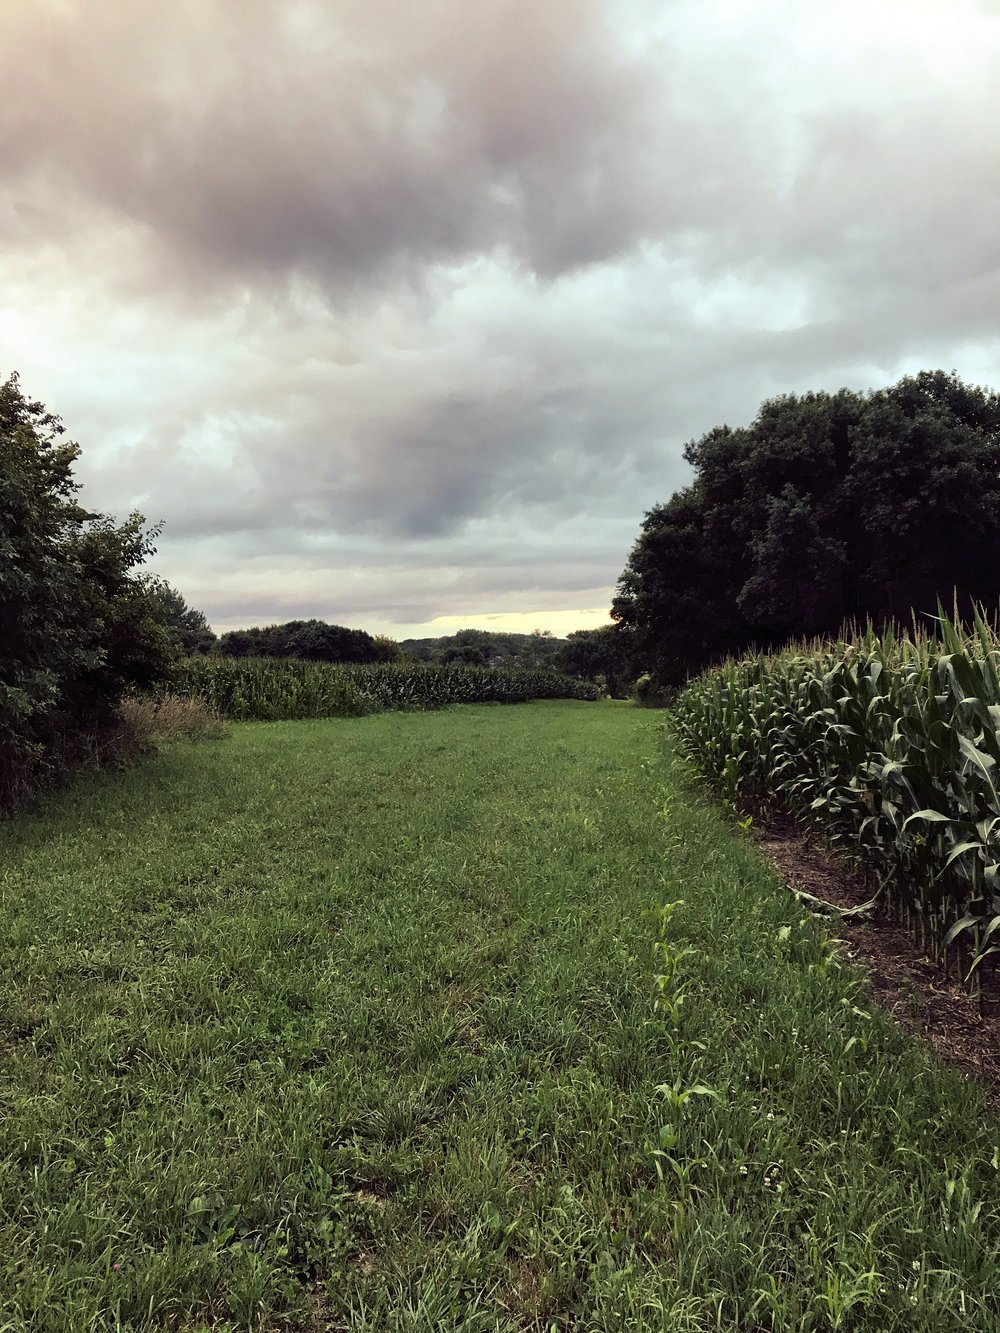 A peaceful meadow surrounded by rows of corn and soybeans.